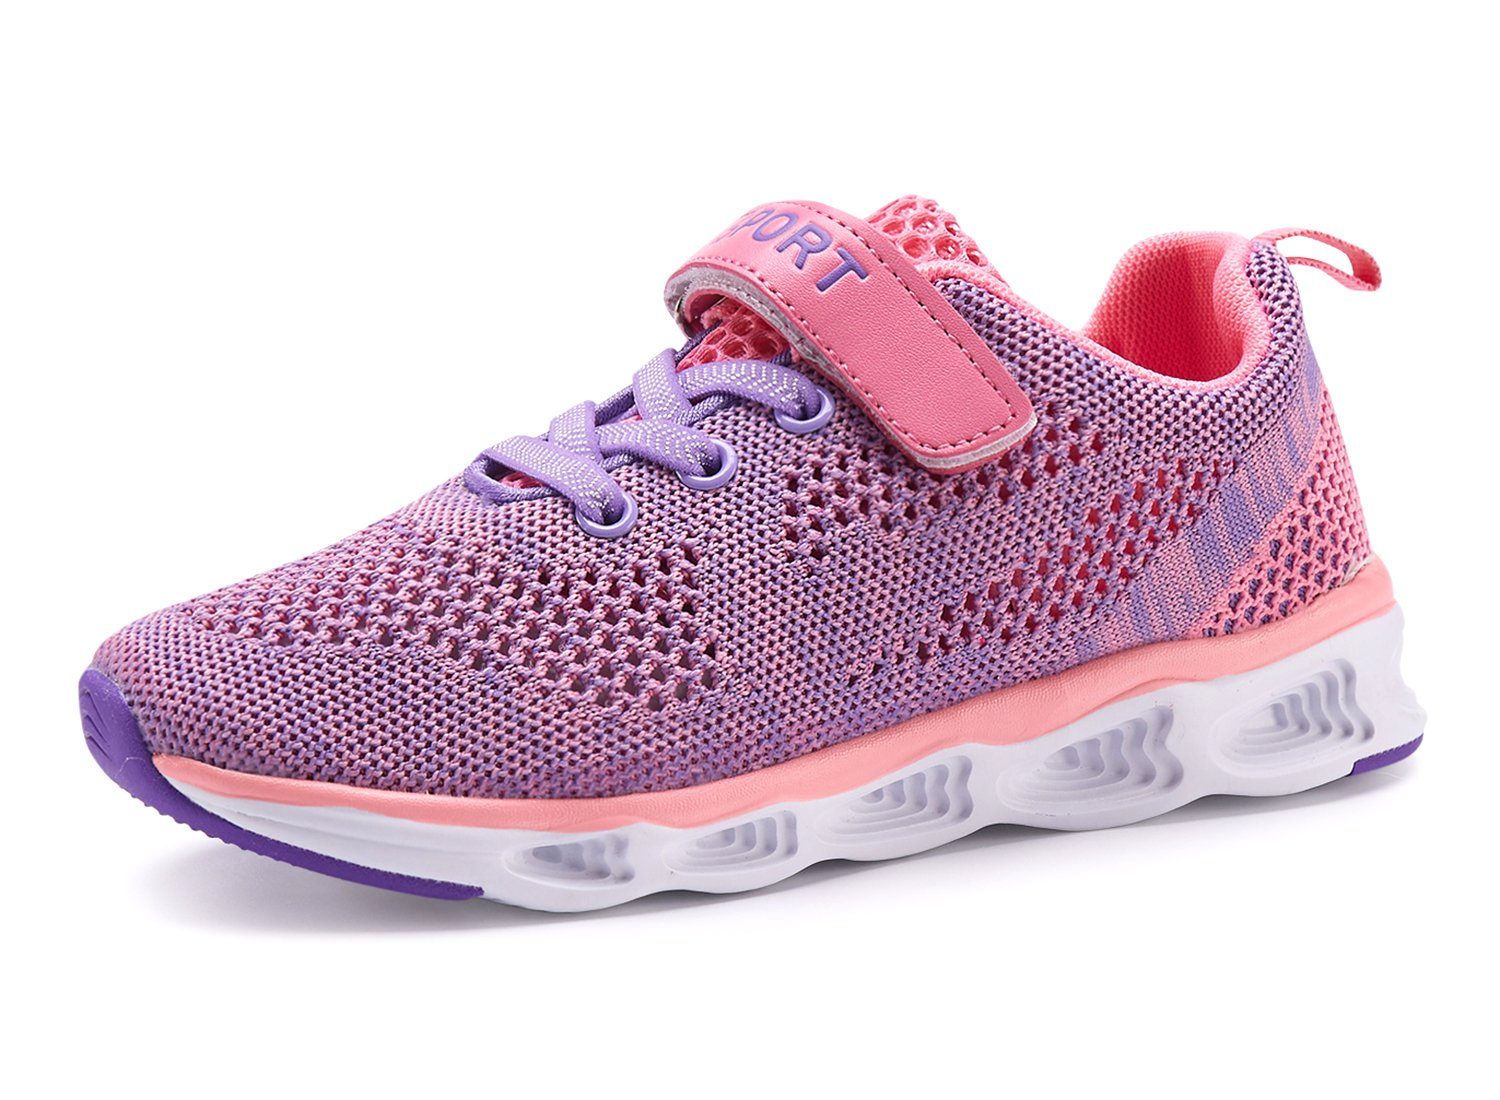 Casbeam Lightweight Comfortable Boys and Grils Running Shoes Purple 34